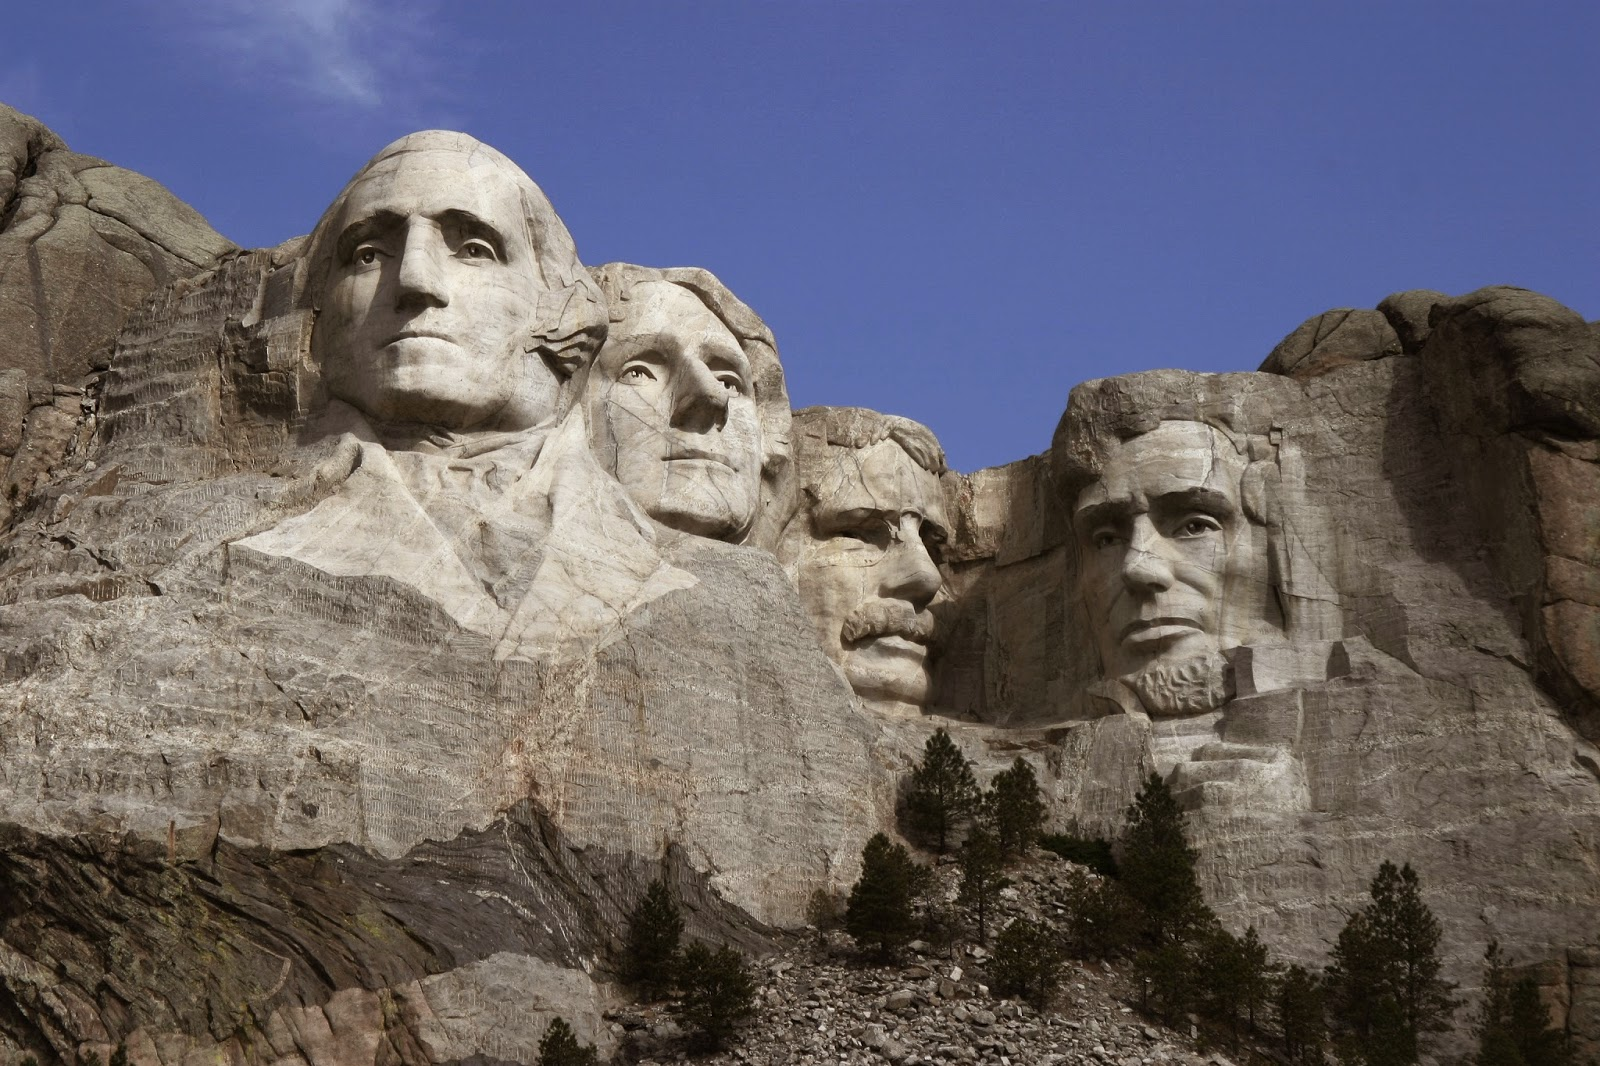 Image of Mt. Rushmore.